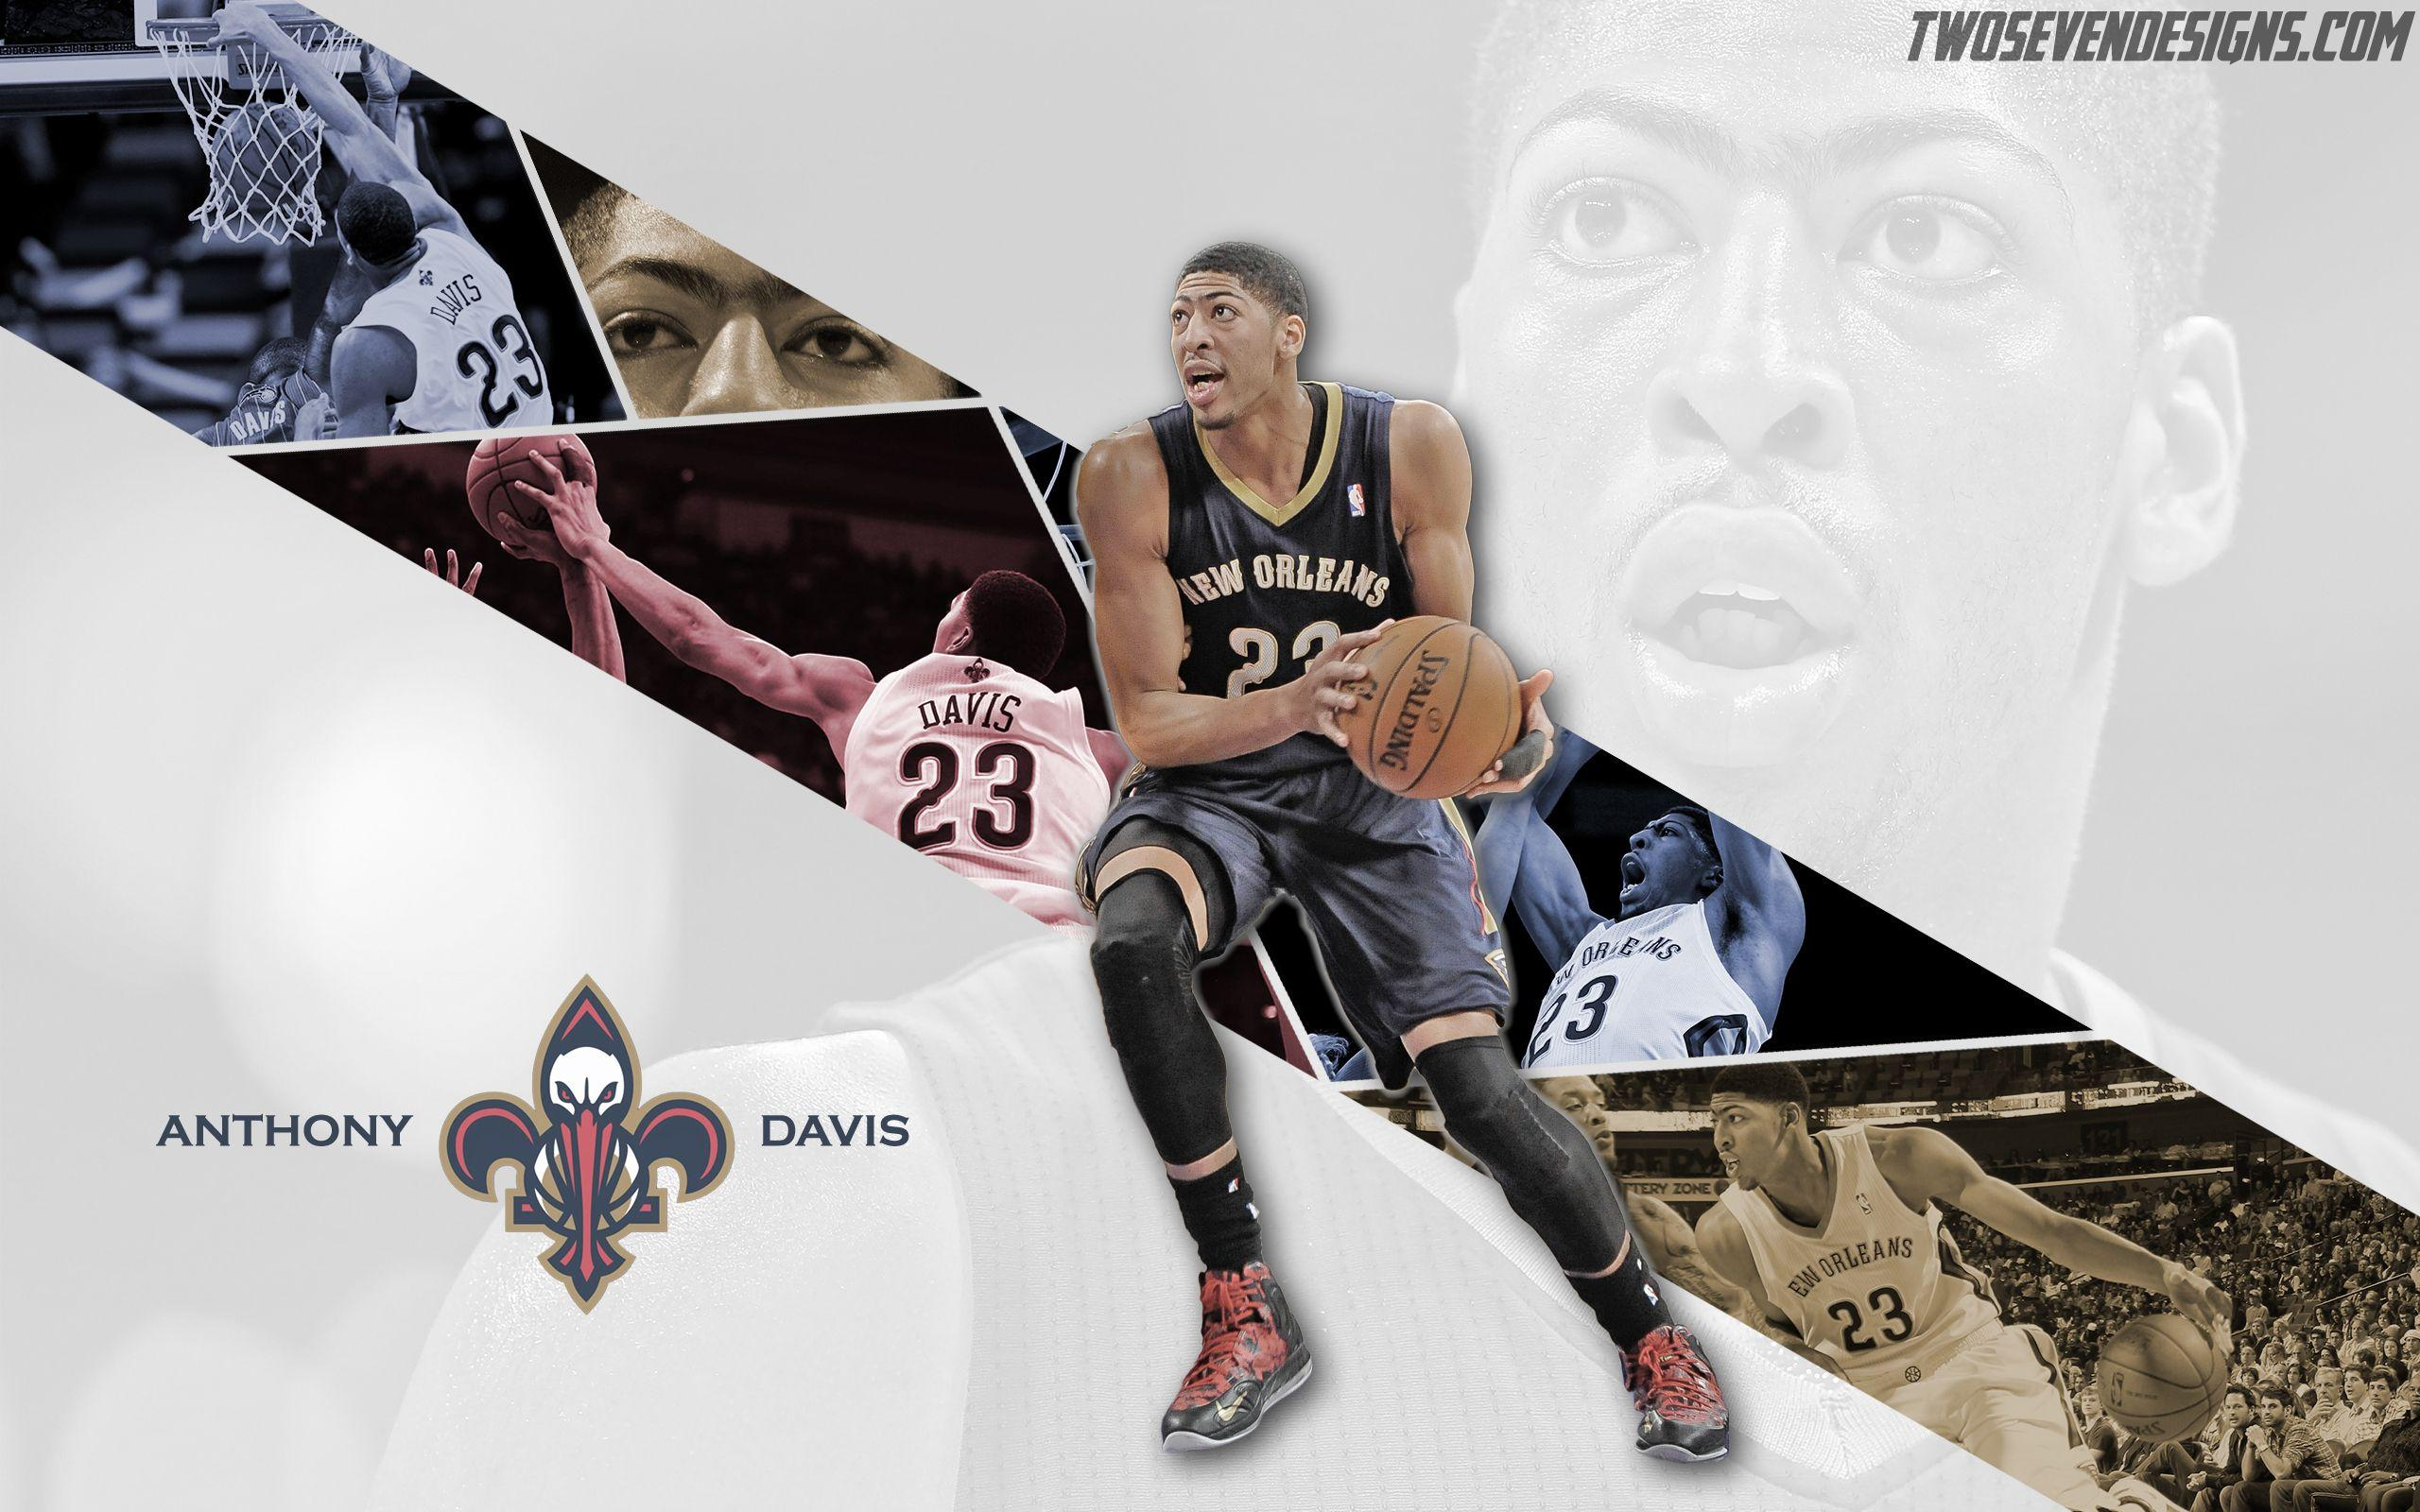 NEW Anthony Davis Wallpaper | Two Seven Designs